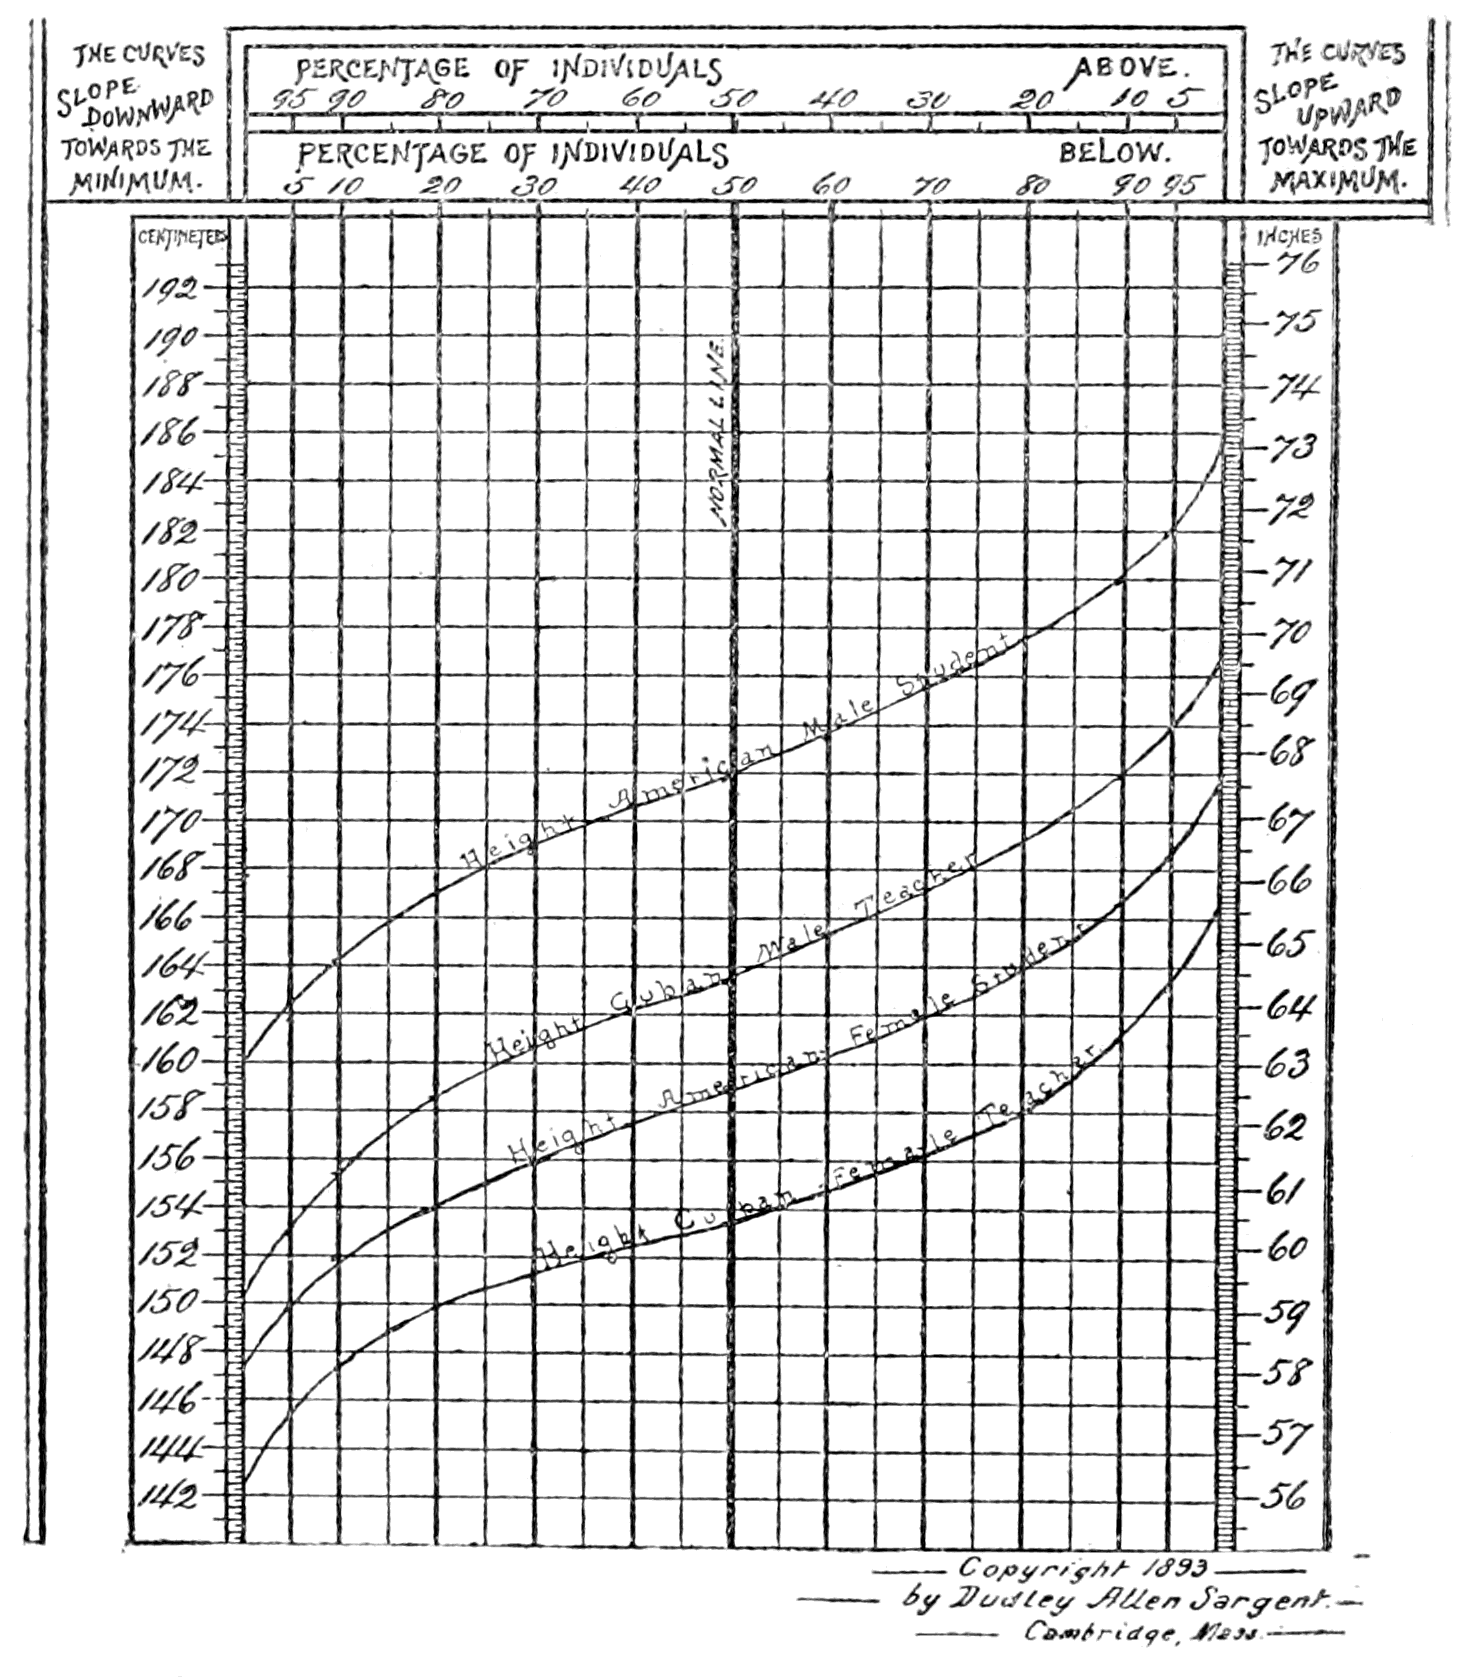 Popular science monthlyvolume 58march 1901the height and weight psm v58 d492 physical size differences between americans and cubansg chart 1 nvjuhfo Gallery